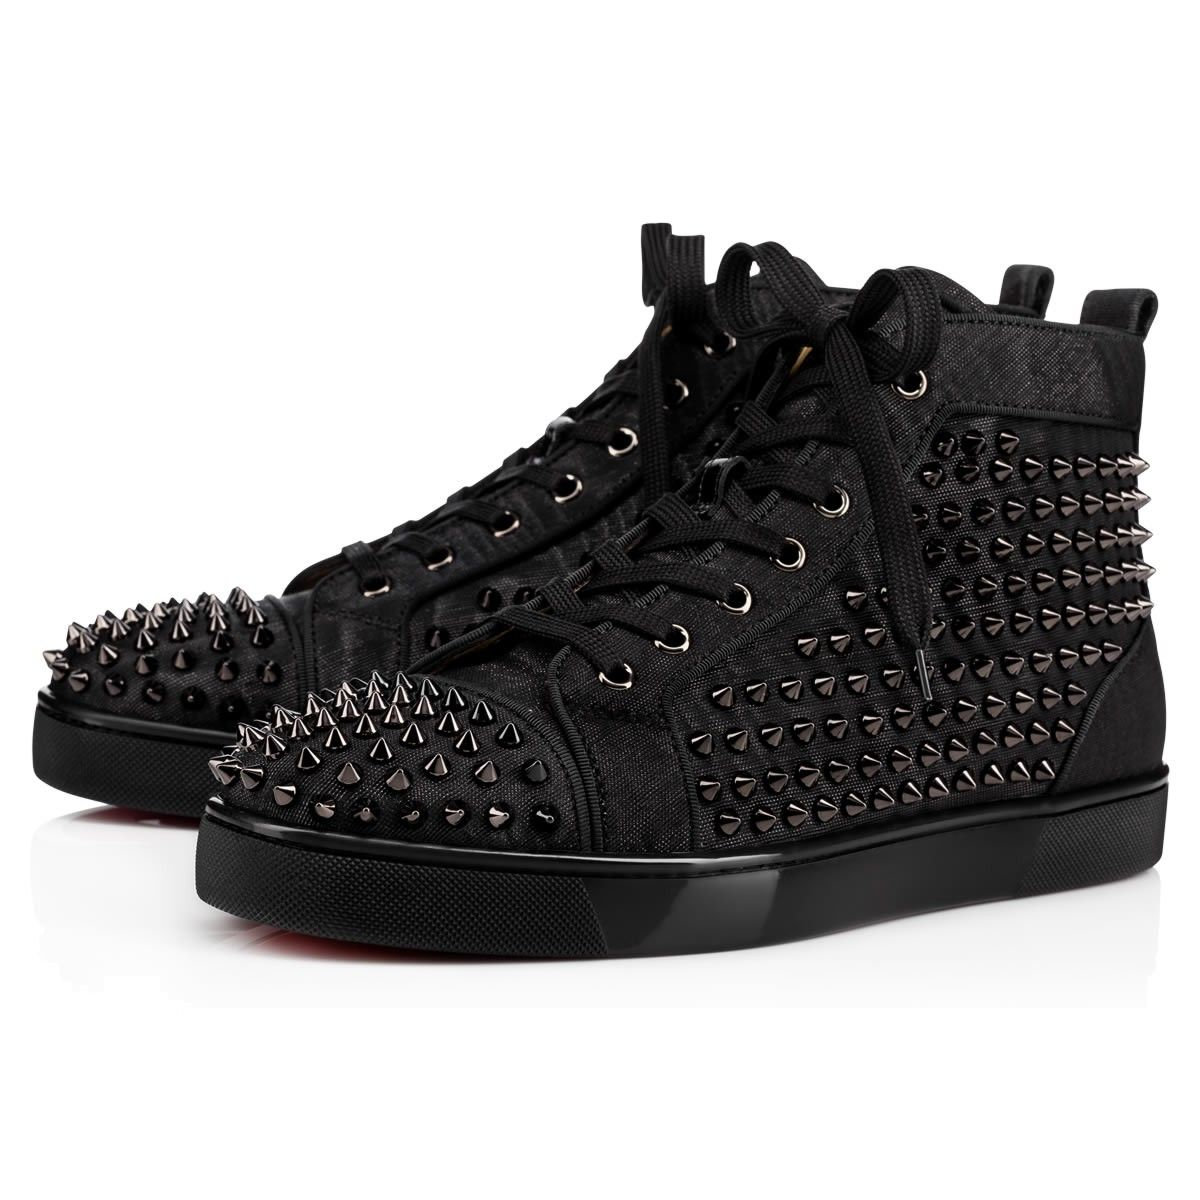 bec9a158fe9f CHRISTIAN LOUBOUTIN Louis Spikes Orlato Men S Flat Black Gunmetal Leather -  Men Shoes - Christian Louboutin.  christianlouboutin  shoes